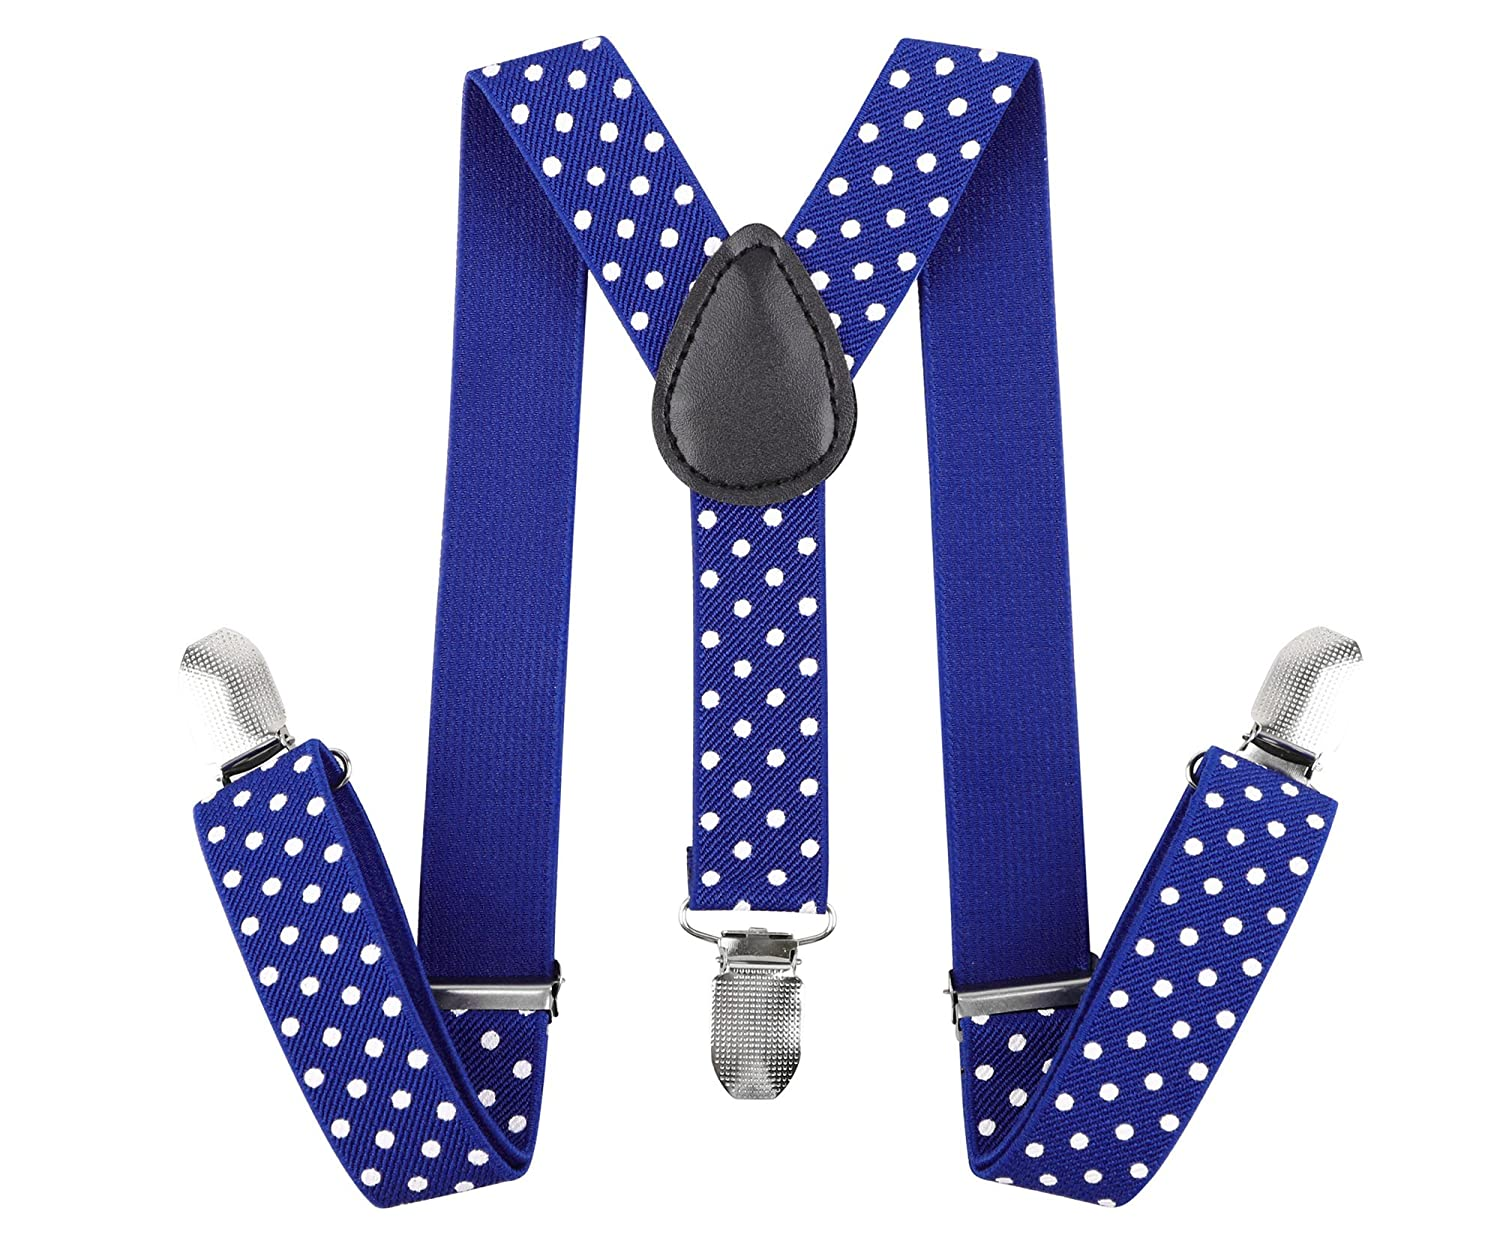 Livingston Adjustable Elastic Suspenders for Children Boys Kids, Assorted Colors